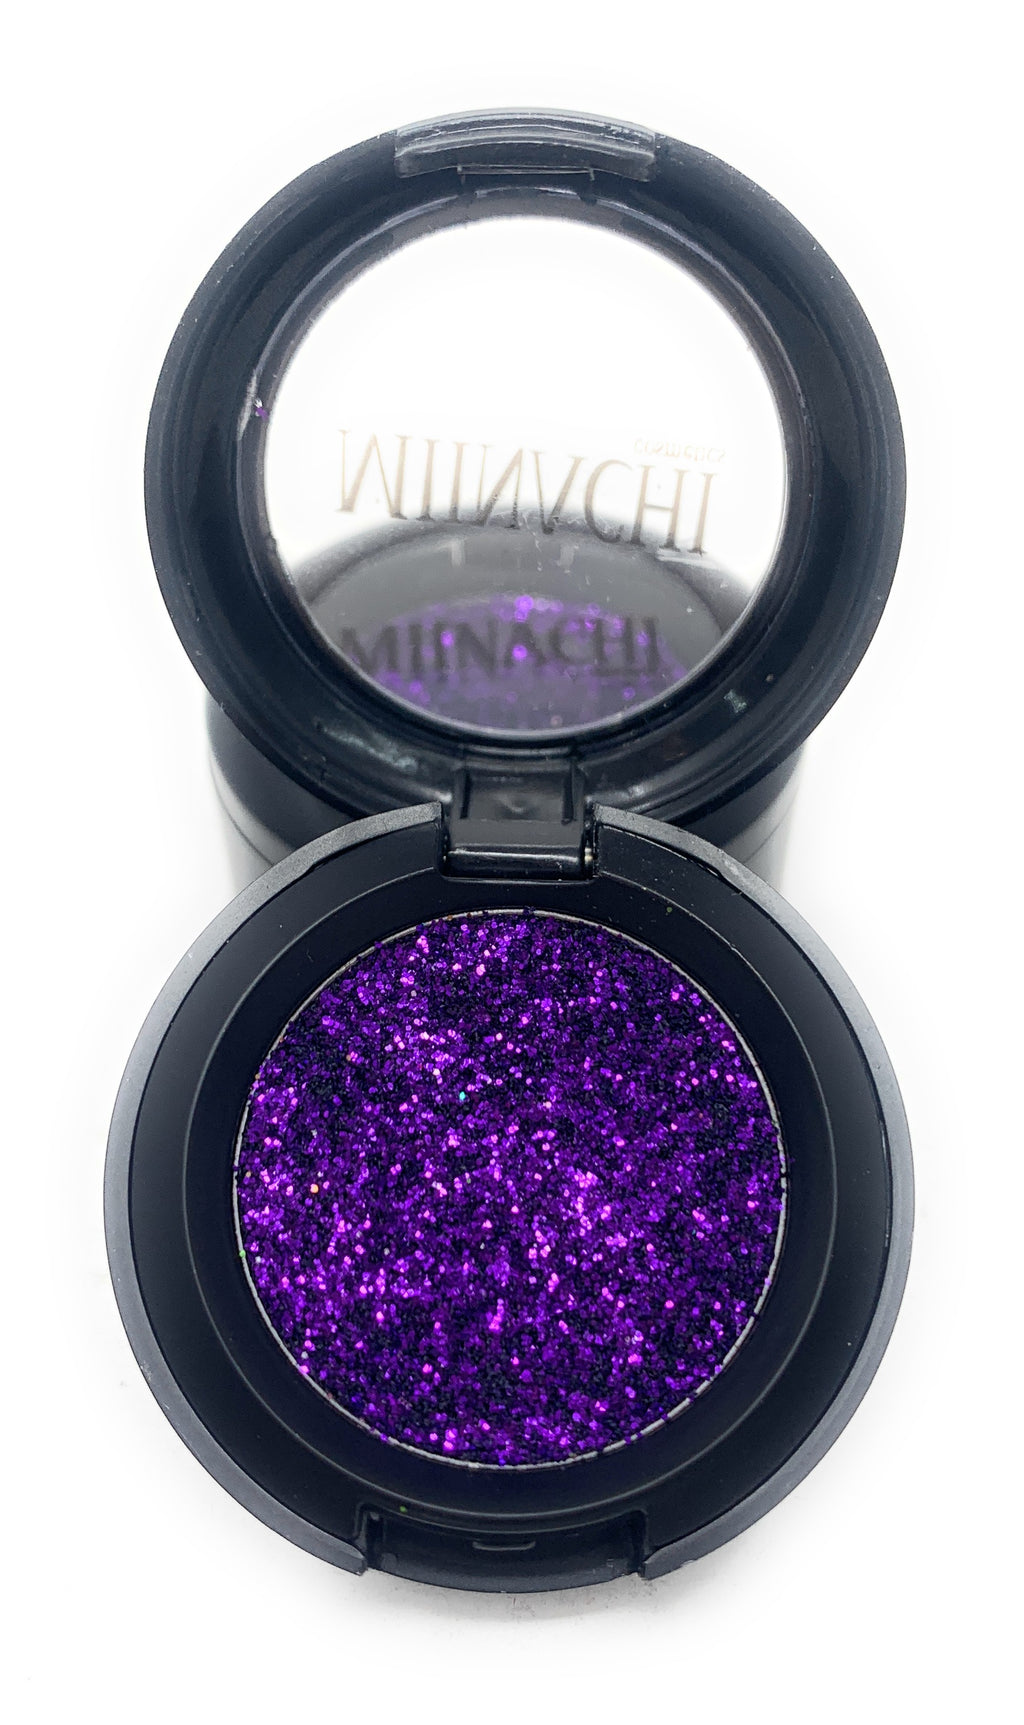 Single Pressed Glitter in the shade Passionate, No Glue Needed, In Compact, Pigmented, No Fall Out, Glitter, Cosmetic Grade Glitter, Purple